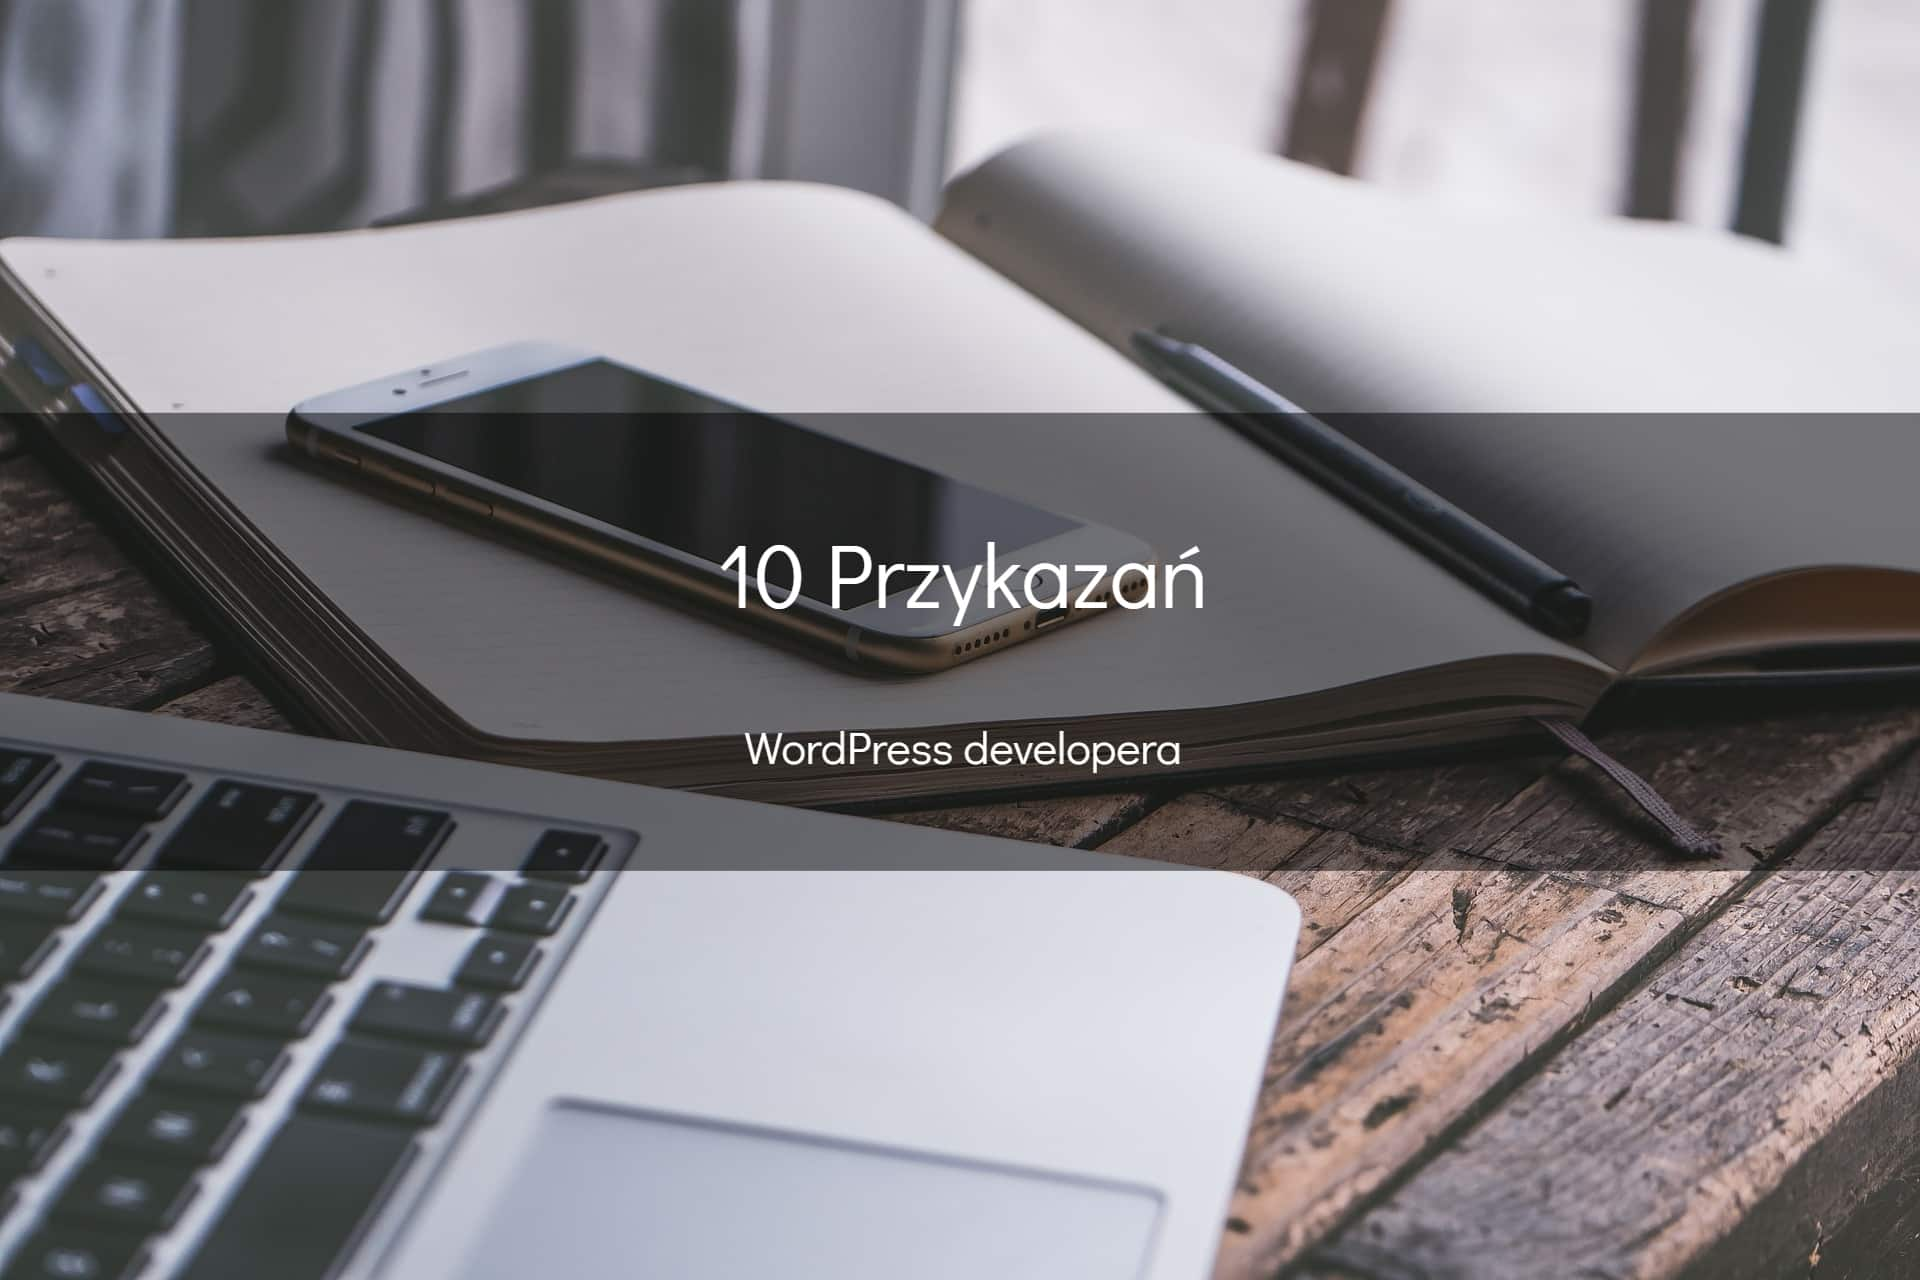 10 przykazań WordPress developera